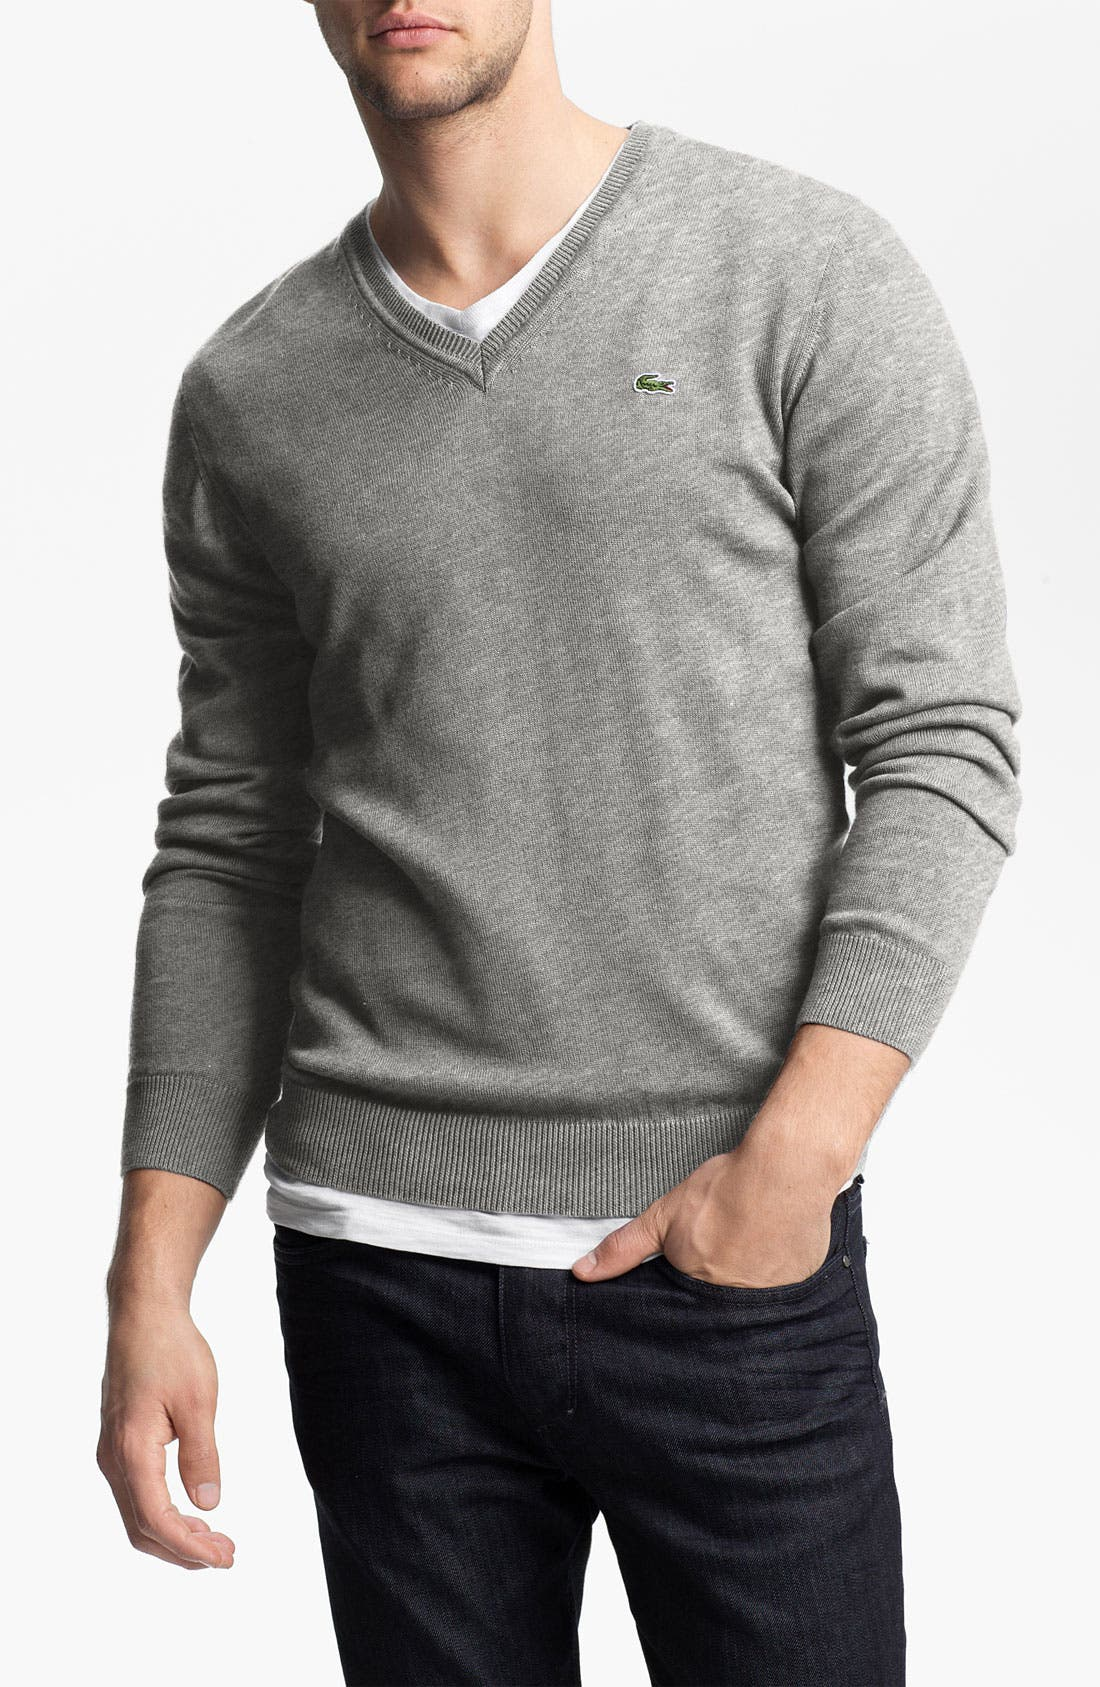 Main Image - Lacoste Jersey Cotton V-Neck Sweater